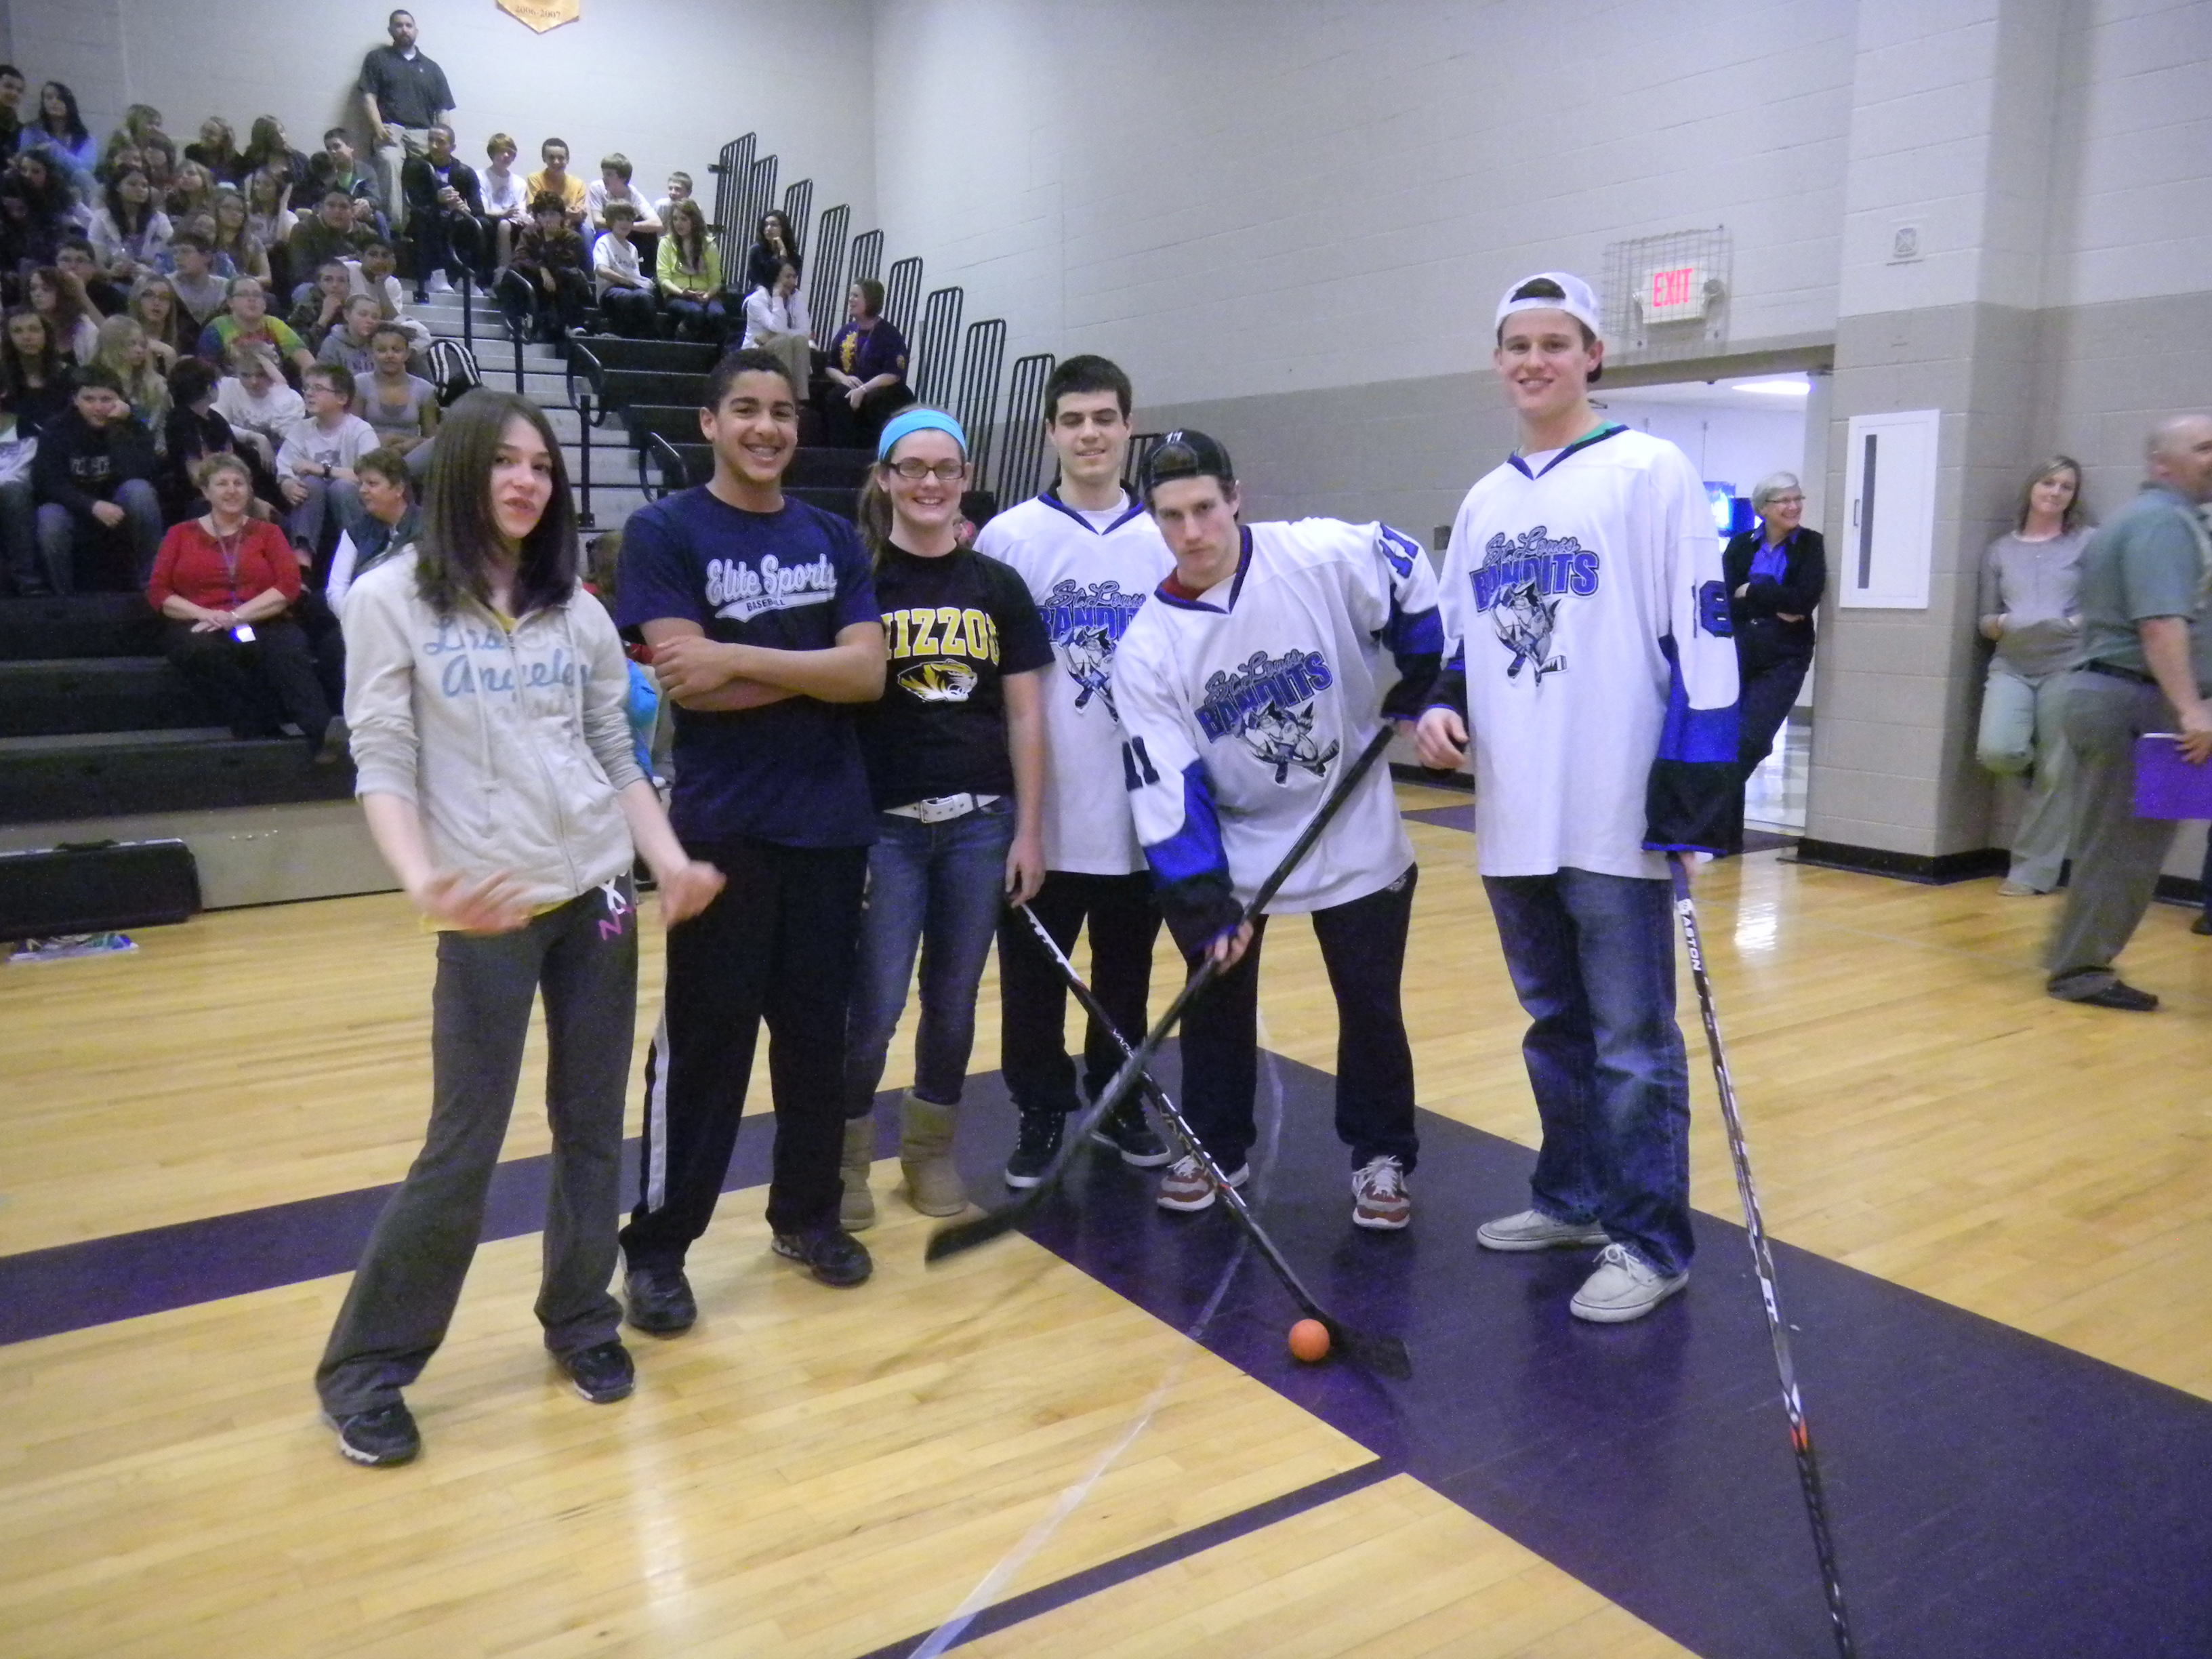 Teaming up with students to play some floor hockey!